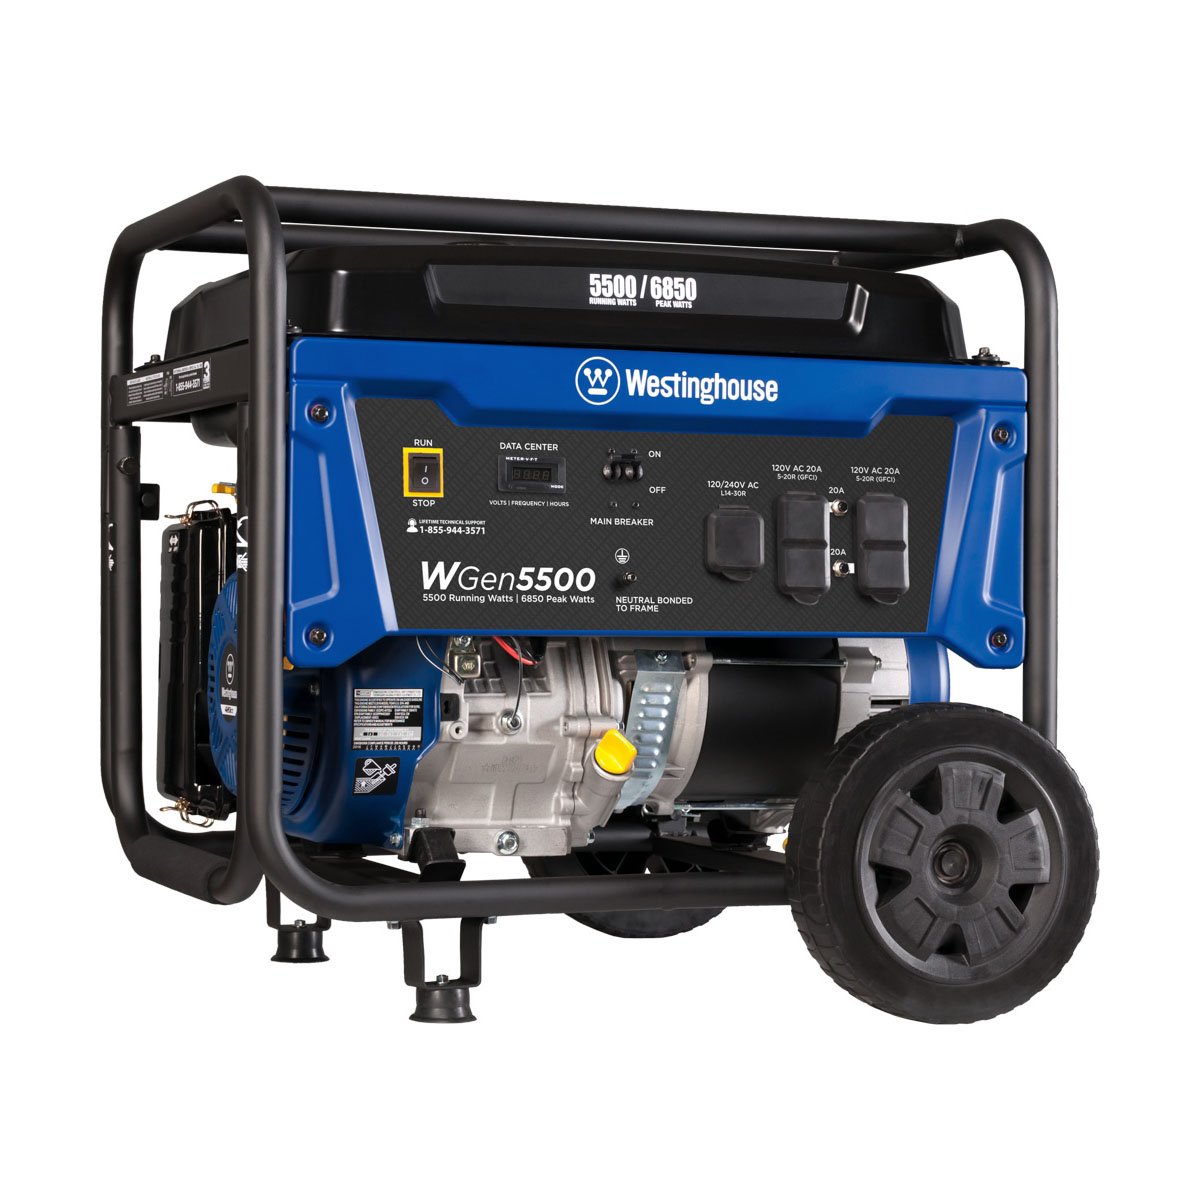 Westinghouse WGen5500 Gas Powered Portable Generator - 5500 Running Watts and 6850 Peak Watts - CARB Compliant